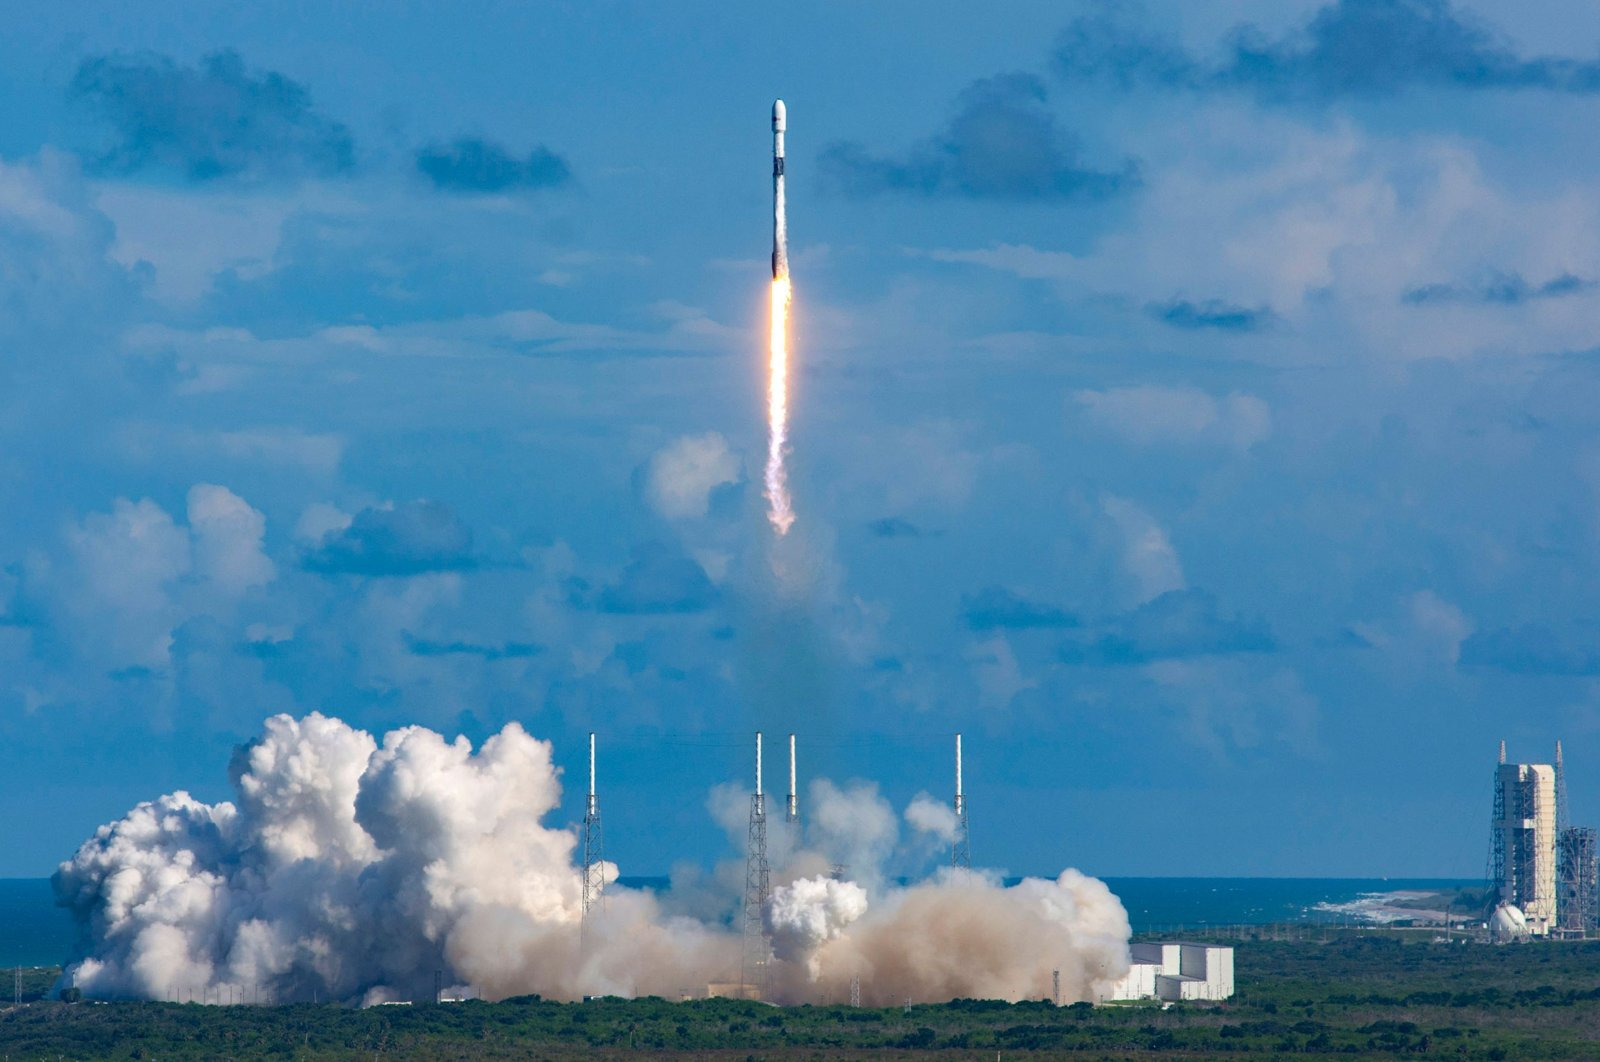 A Falcon 9 rocket carrying South Korea's ANASIS-II satellite blasts off from Cape Canaveral Air Force Station in Florida, U.S., July 20, 2020. (Handout photo from South Korea's Defense Acquisition Program Administration via AFP)